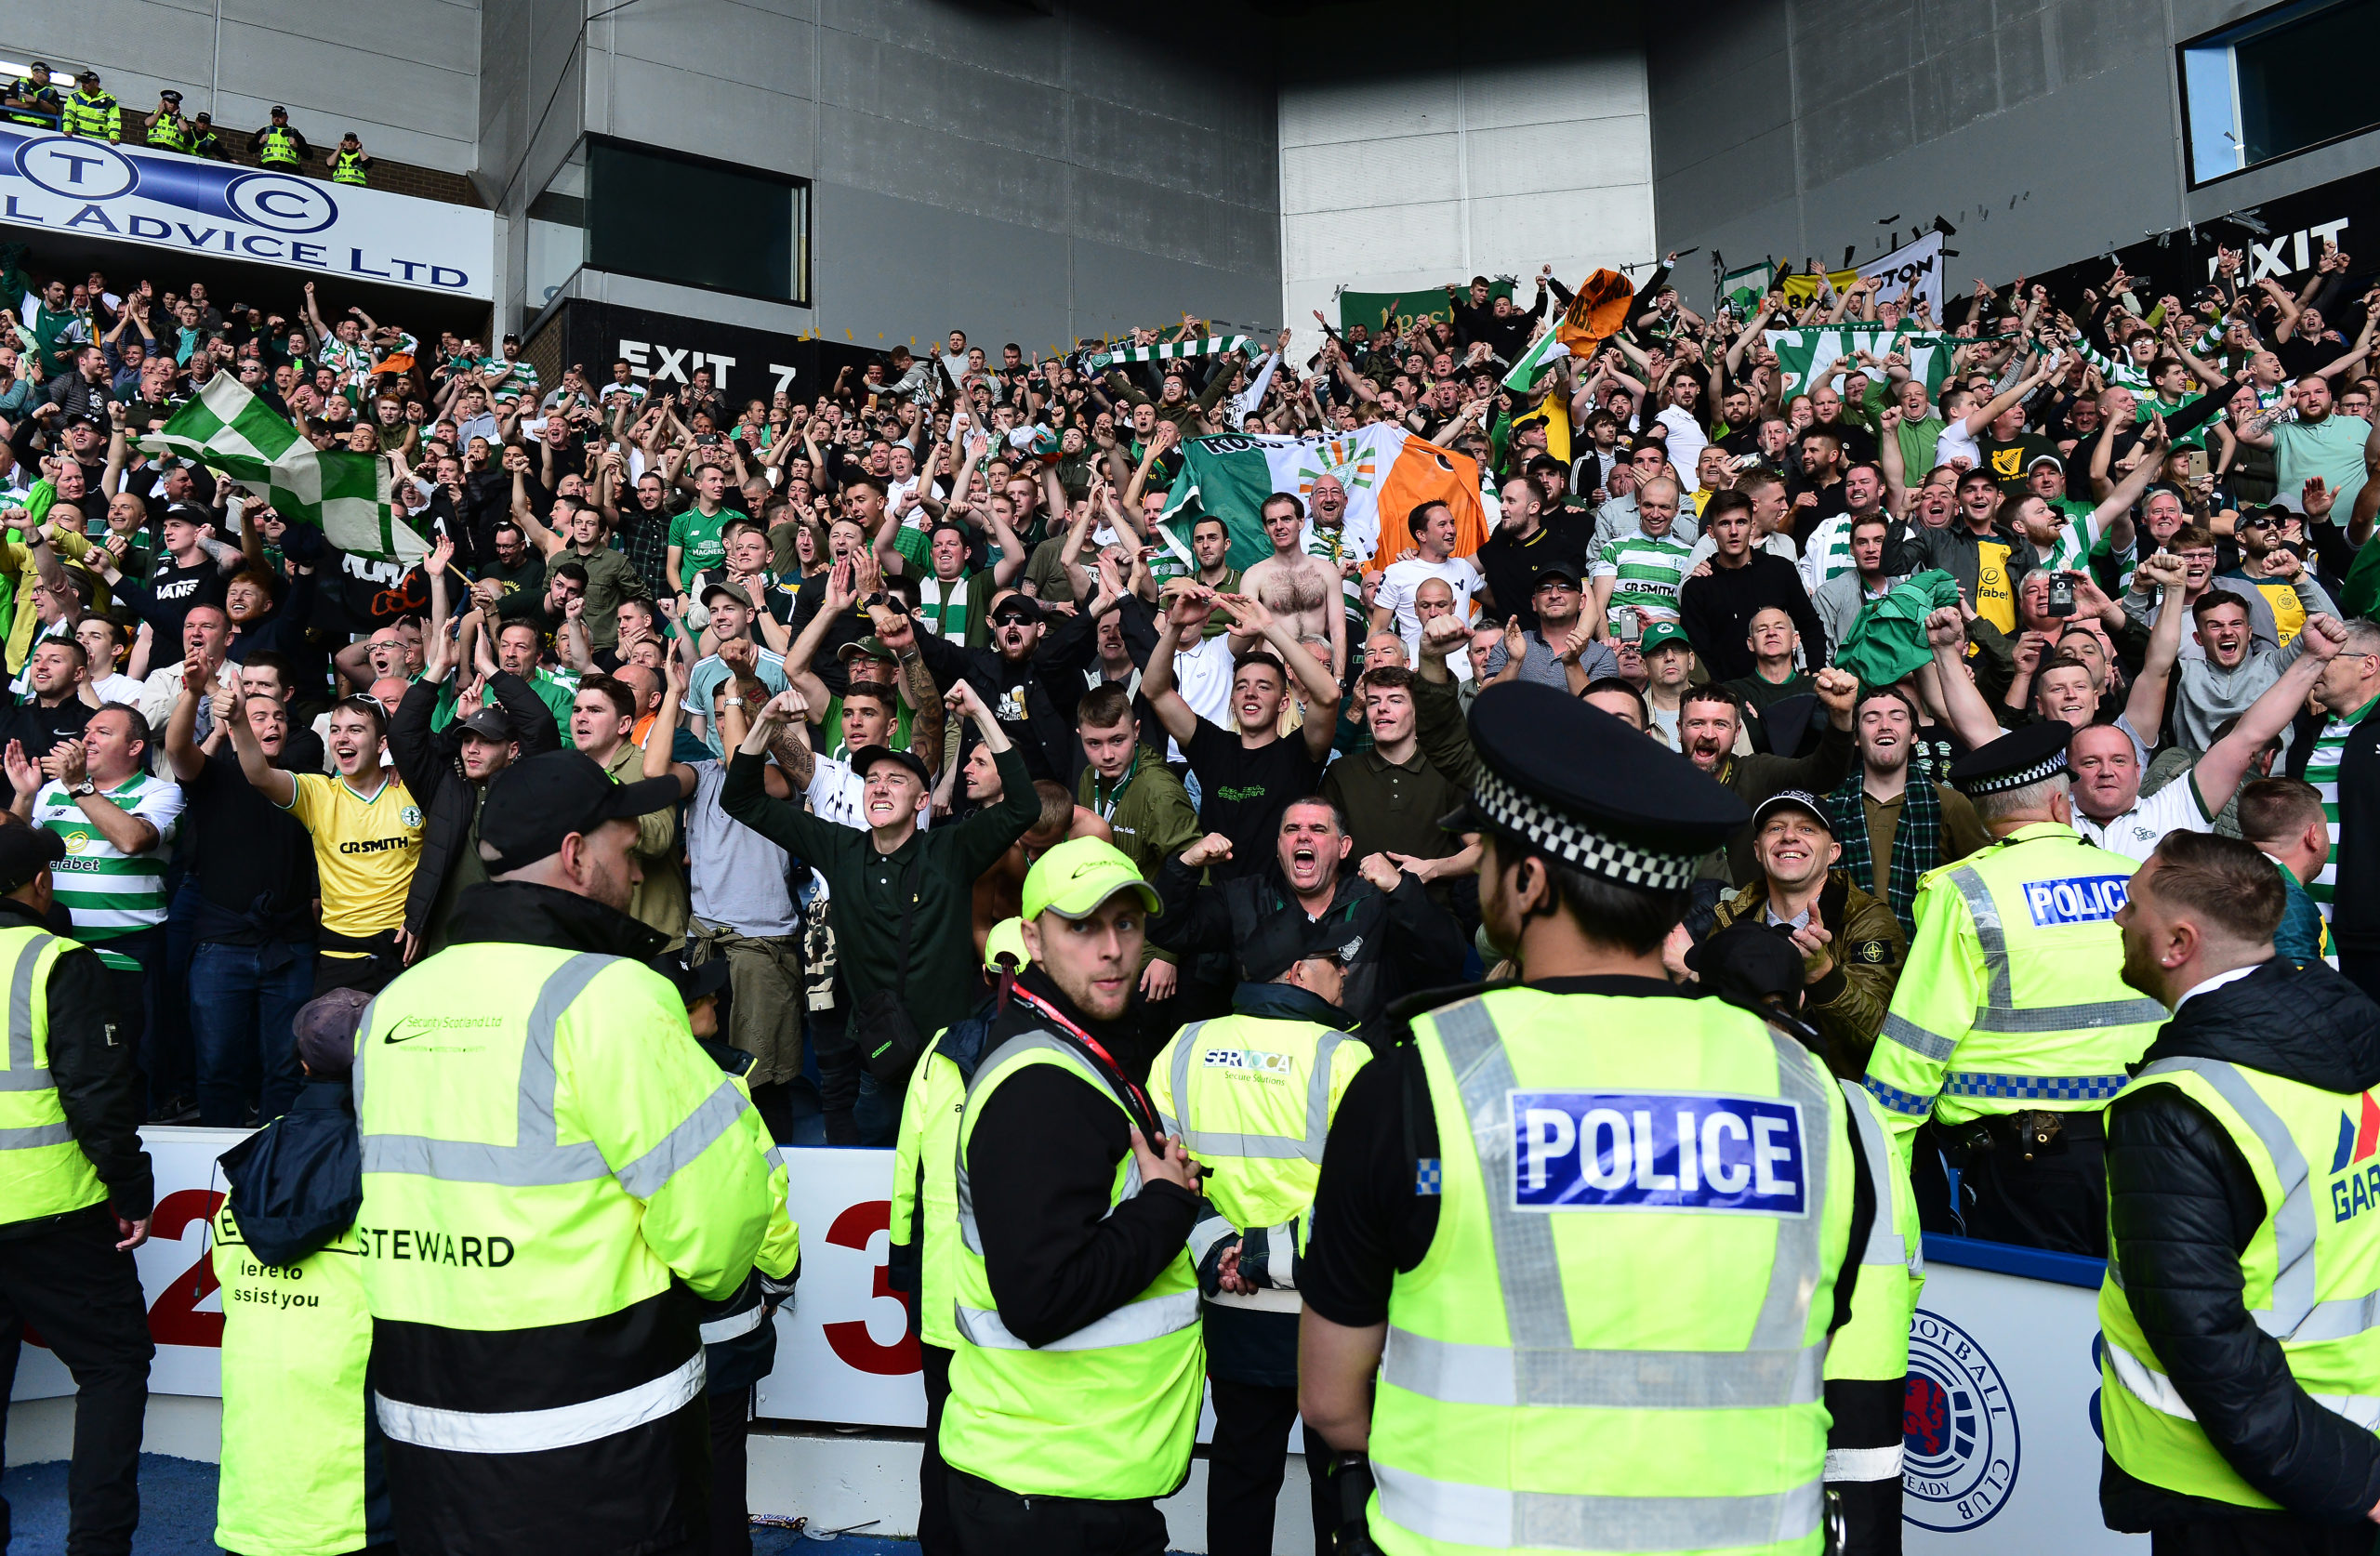 Celtic's away-day allocation at Ibrox has dwindled